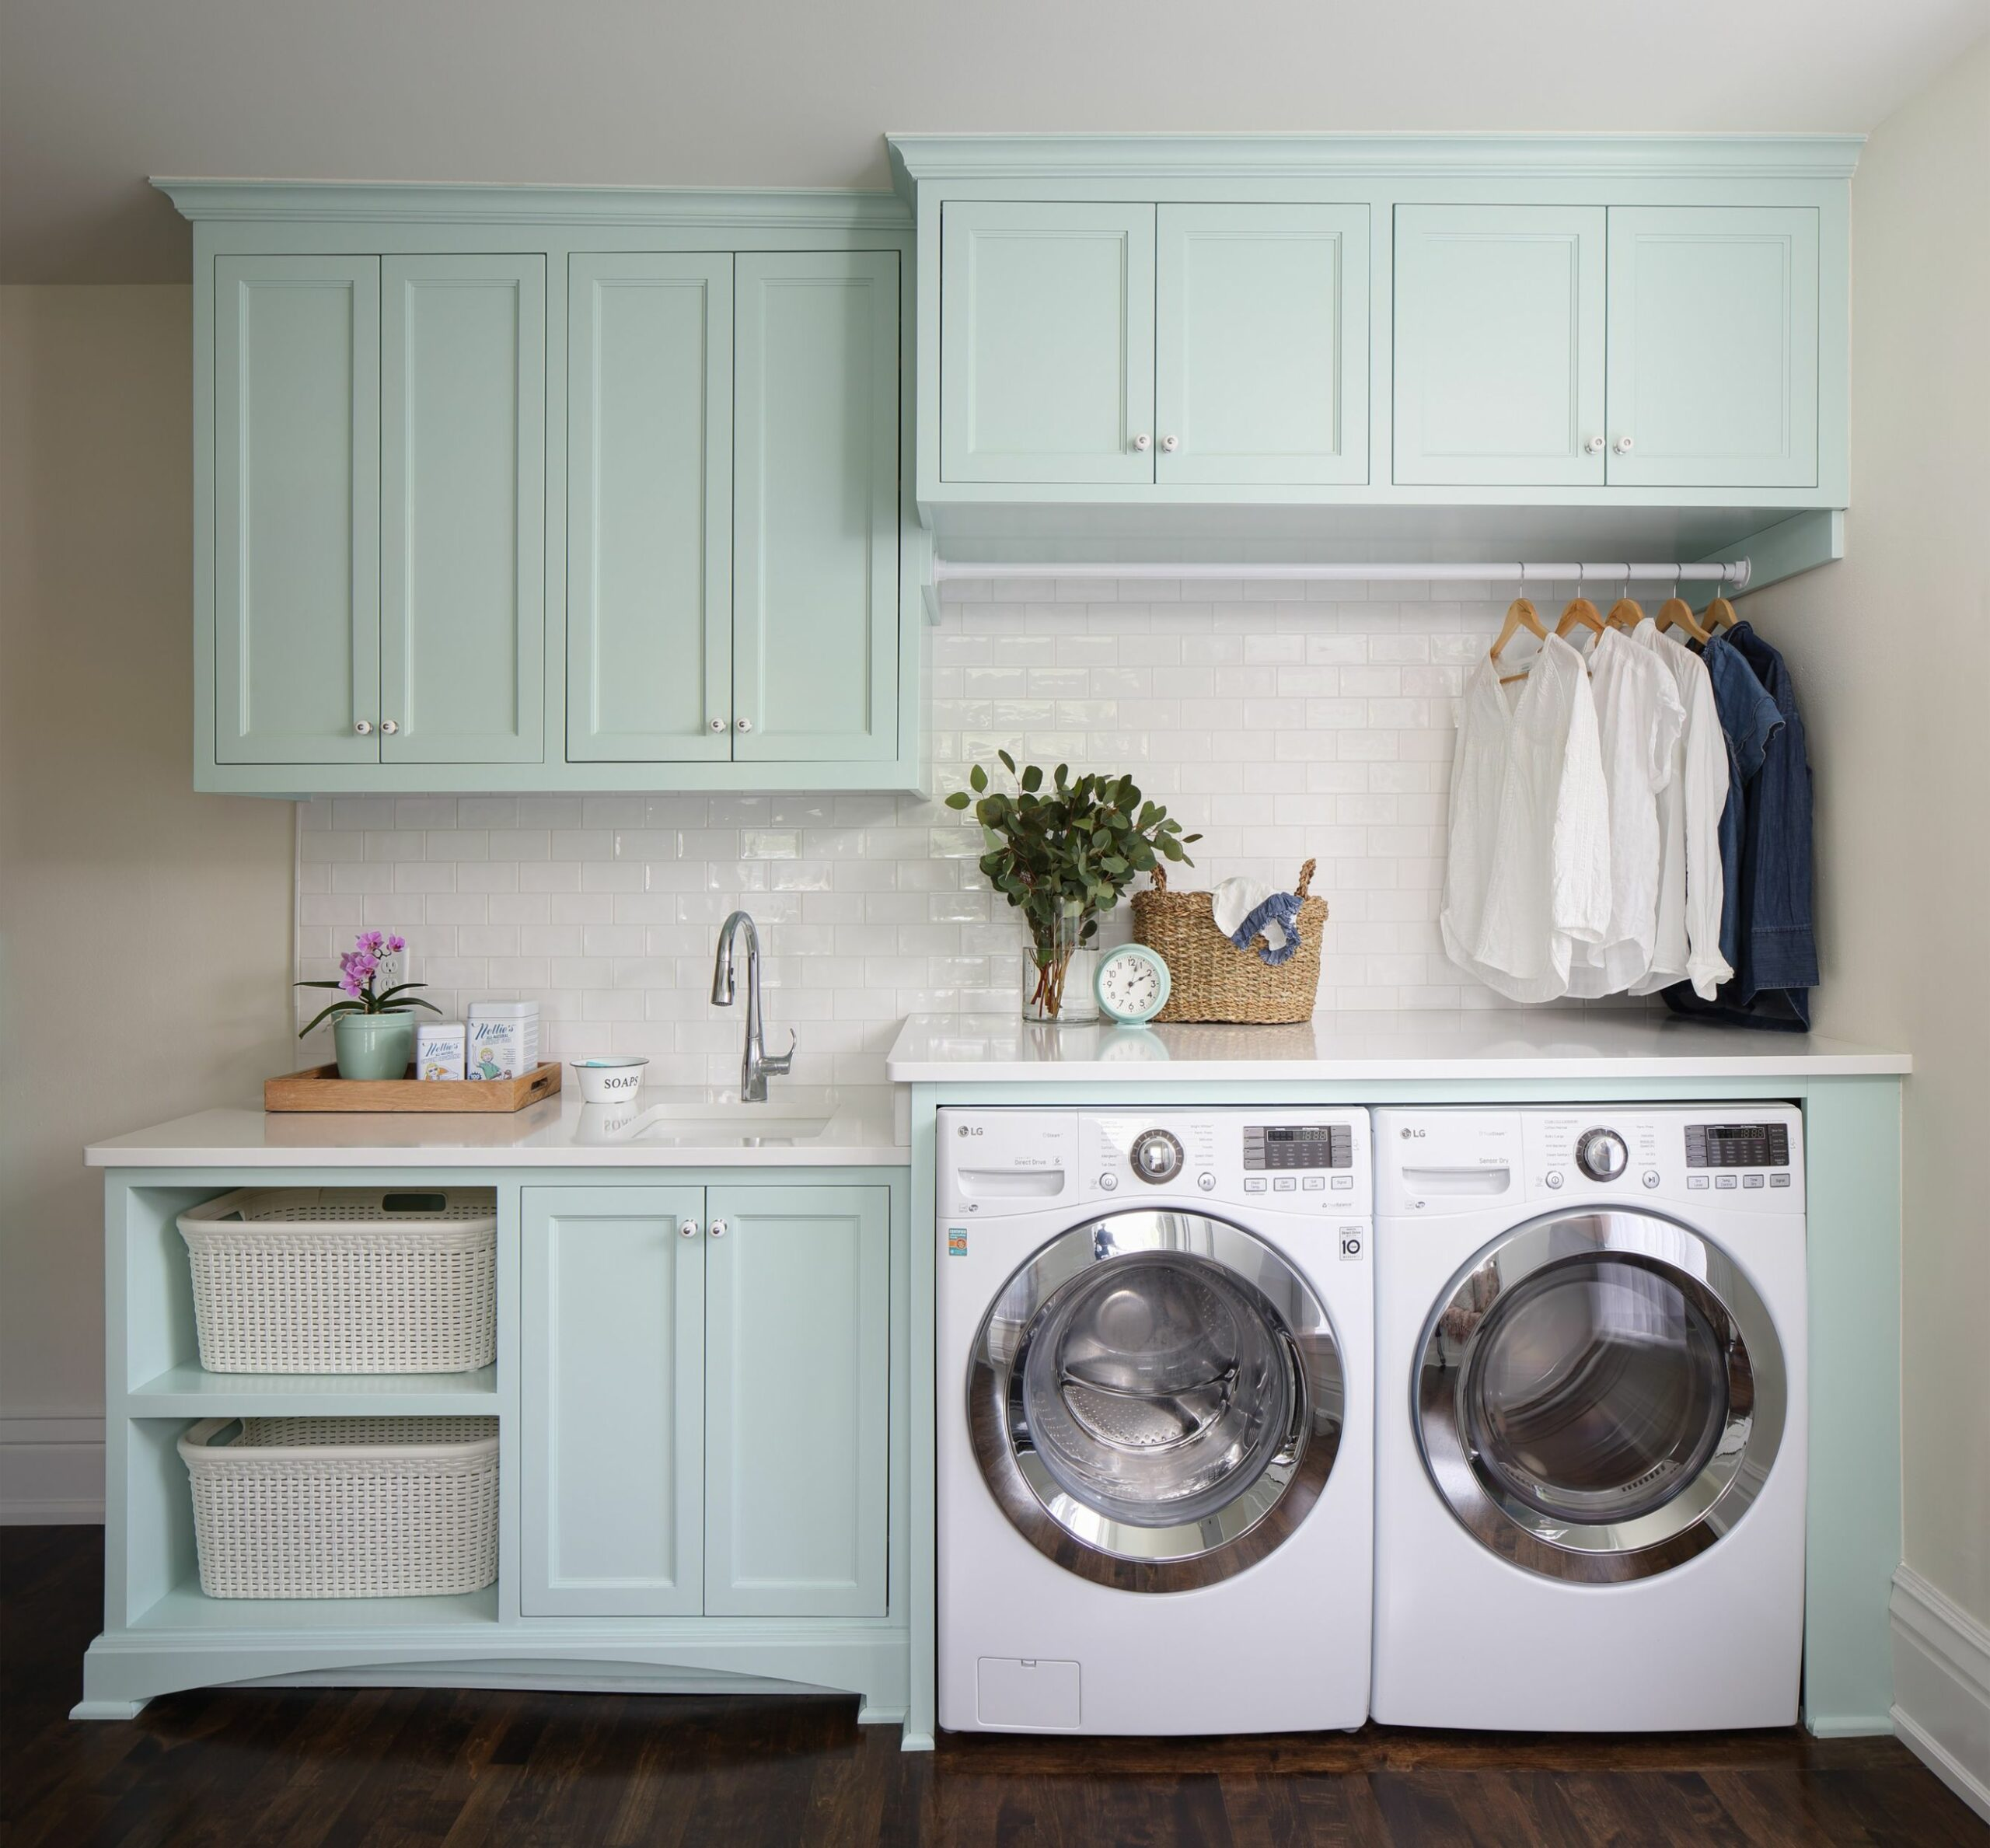 11 Beautiful Laundry Room Pictures & Ideas | Houzz - laundry room tub ideas